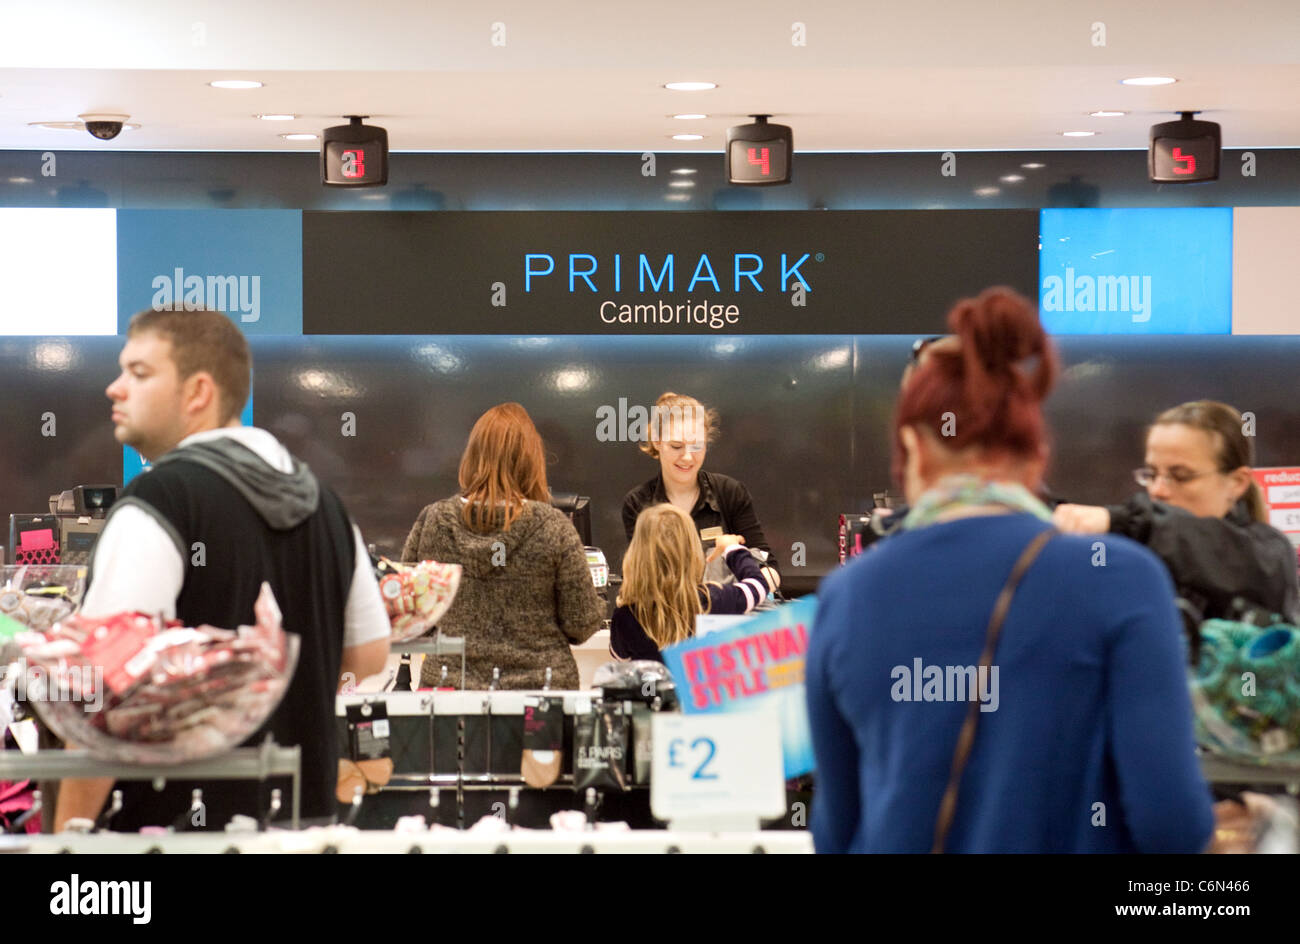 People shopping inside Primark clothes store Cambridge UK - Stock Image